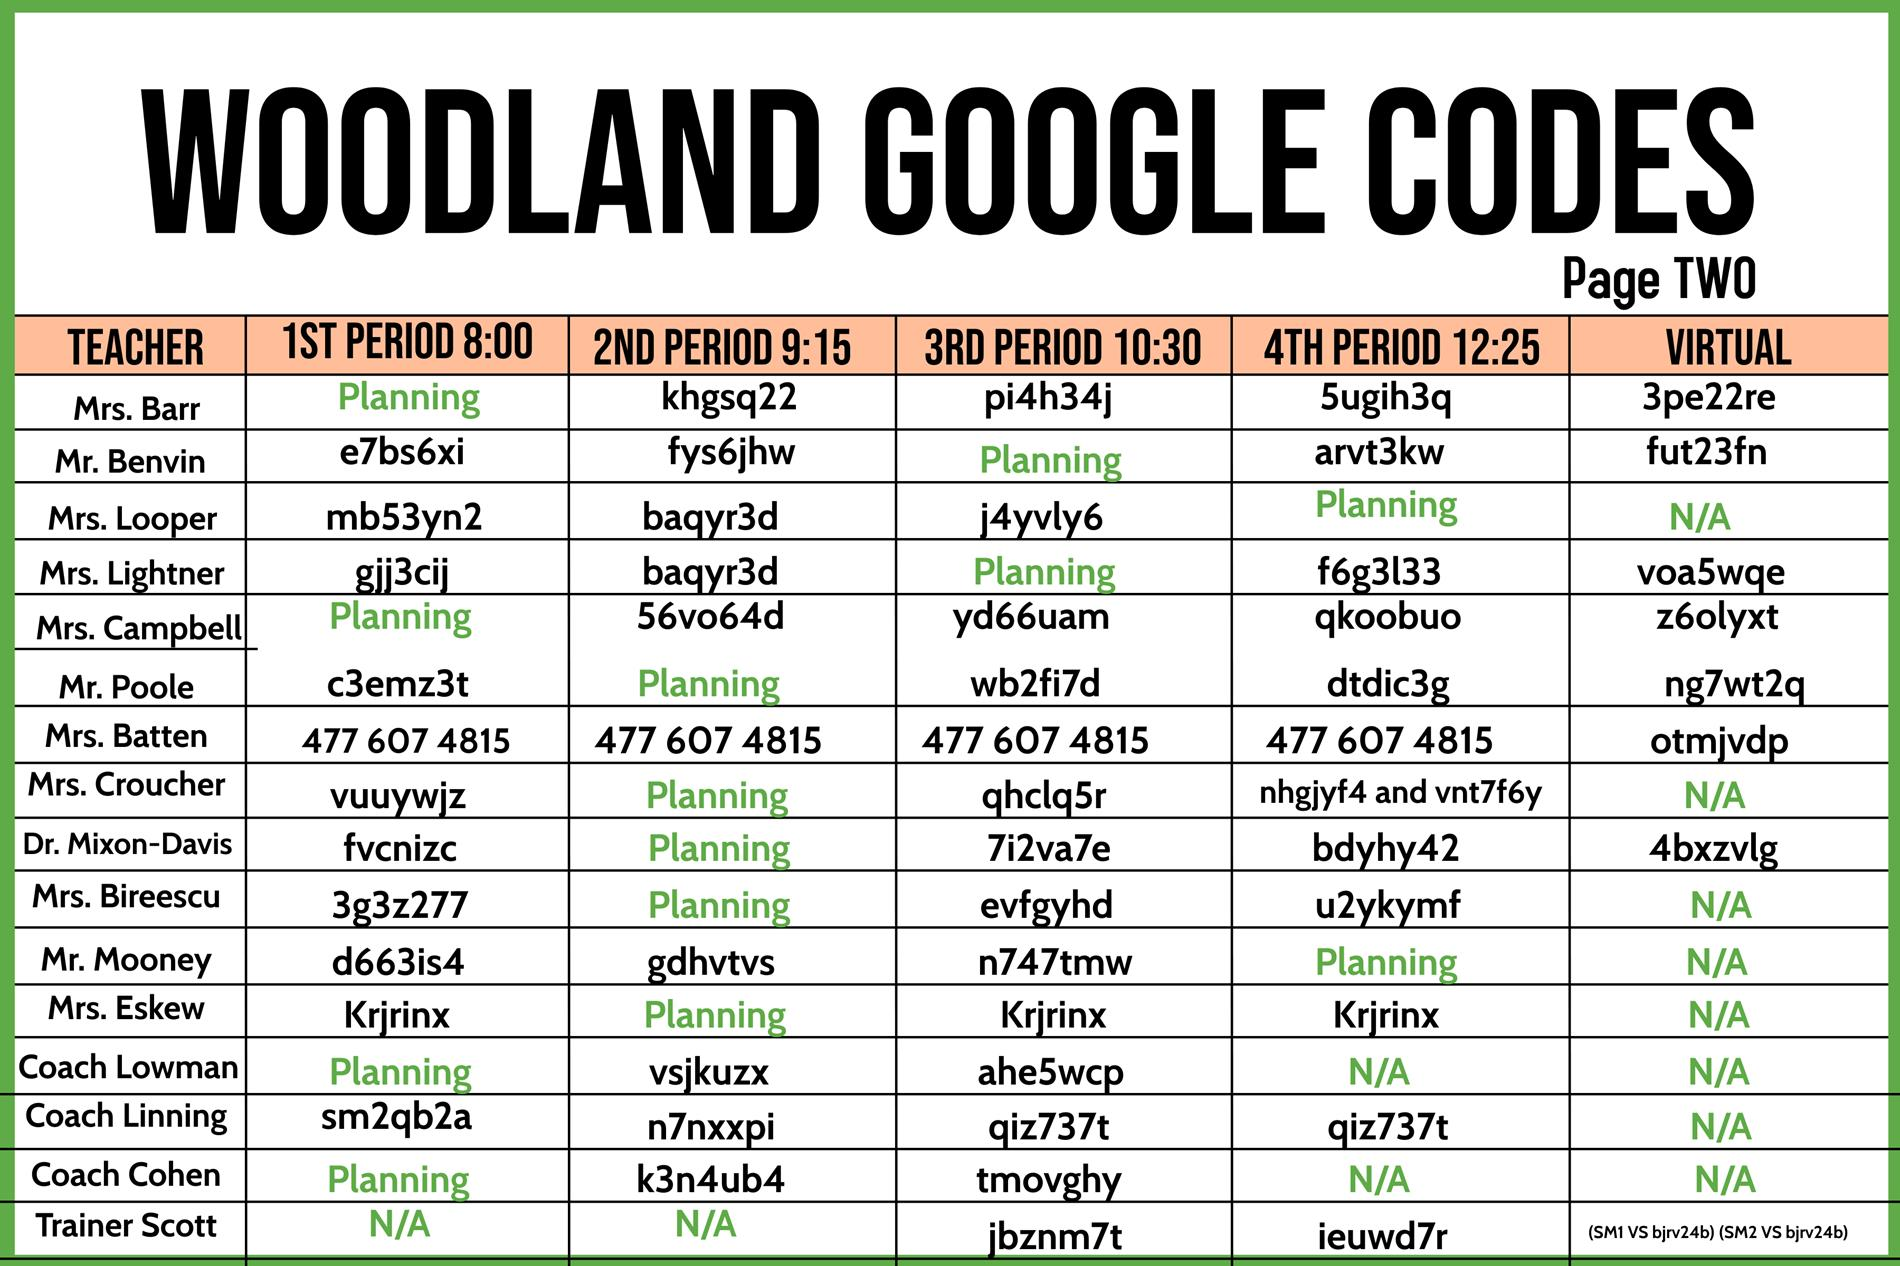 Google Classroom Codes page 2